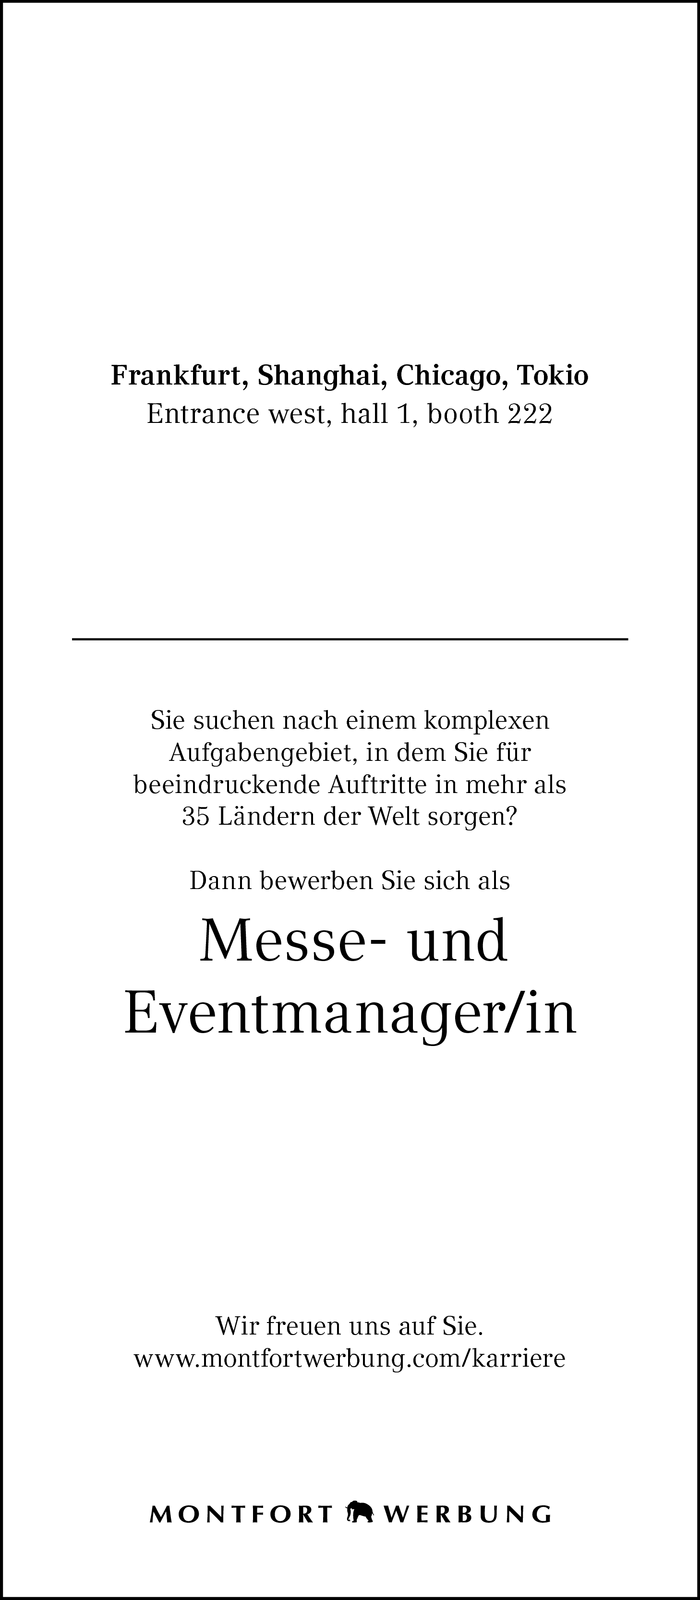 Messe- und Eventmanager/in